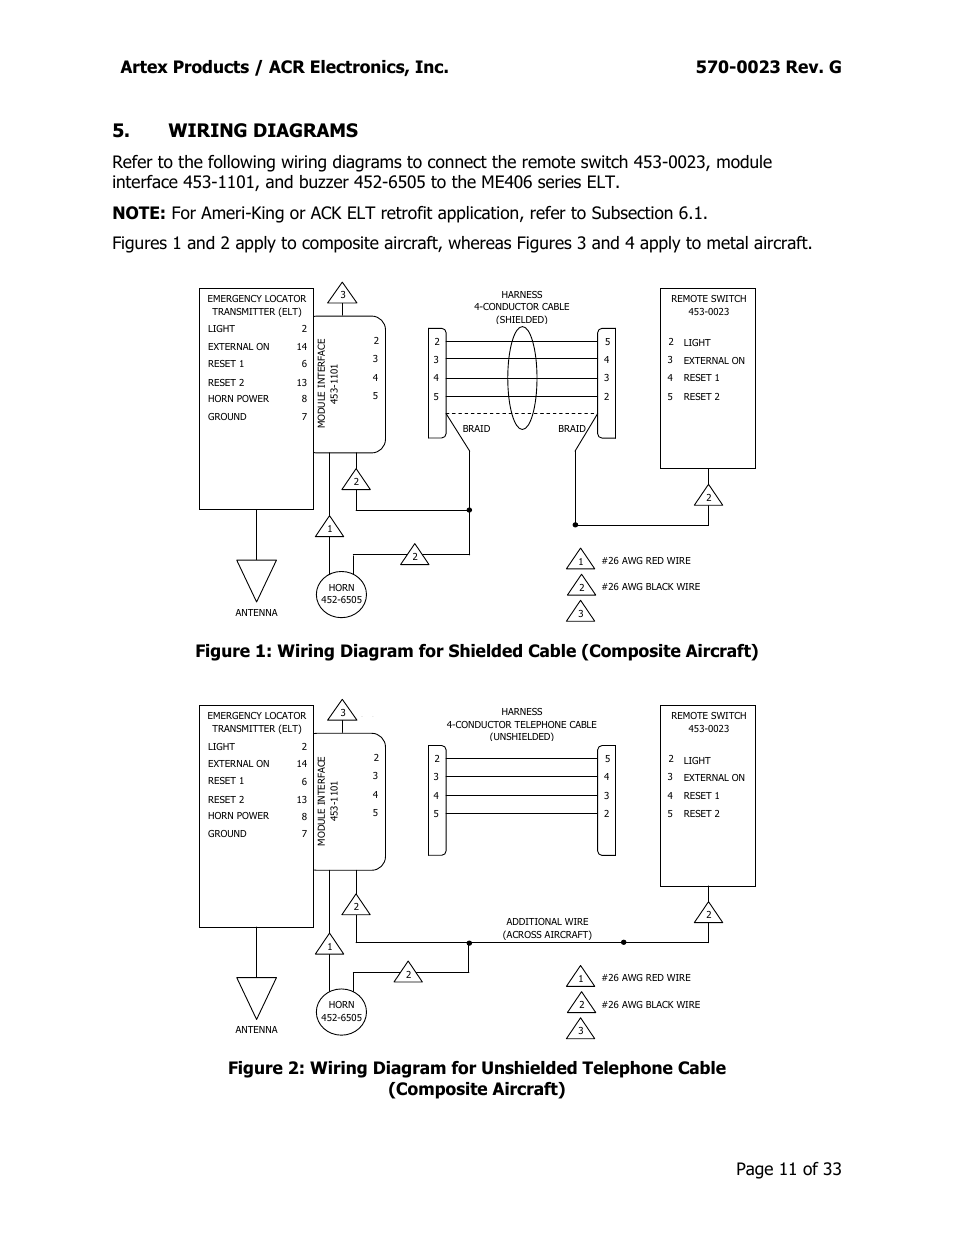 hight resolution of wiring diagrams artex products acr electronics inc 0023 rev g acr artex me406 ace 455 0023 user manual page 11 33